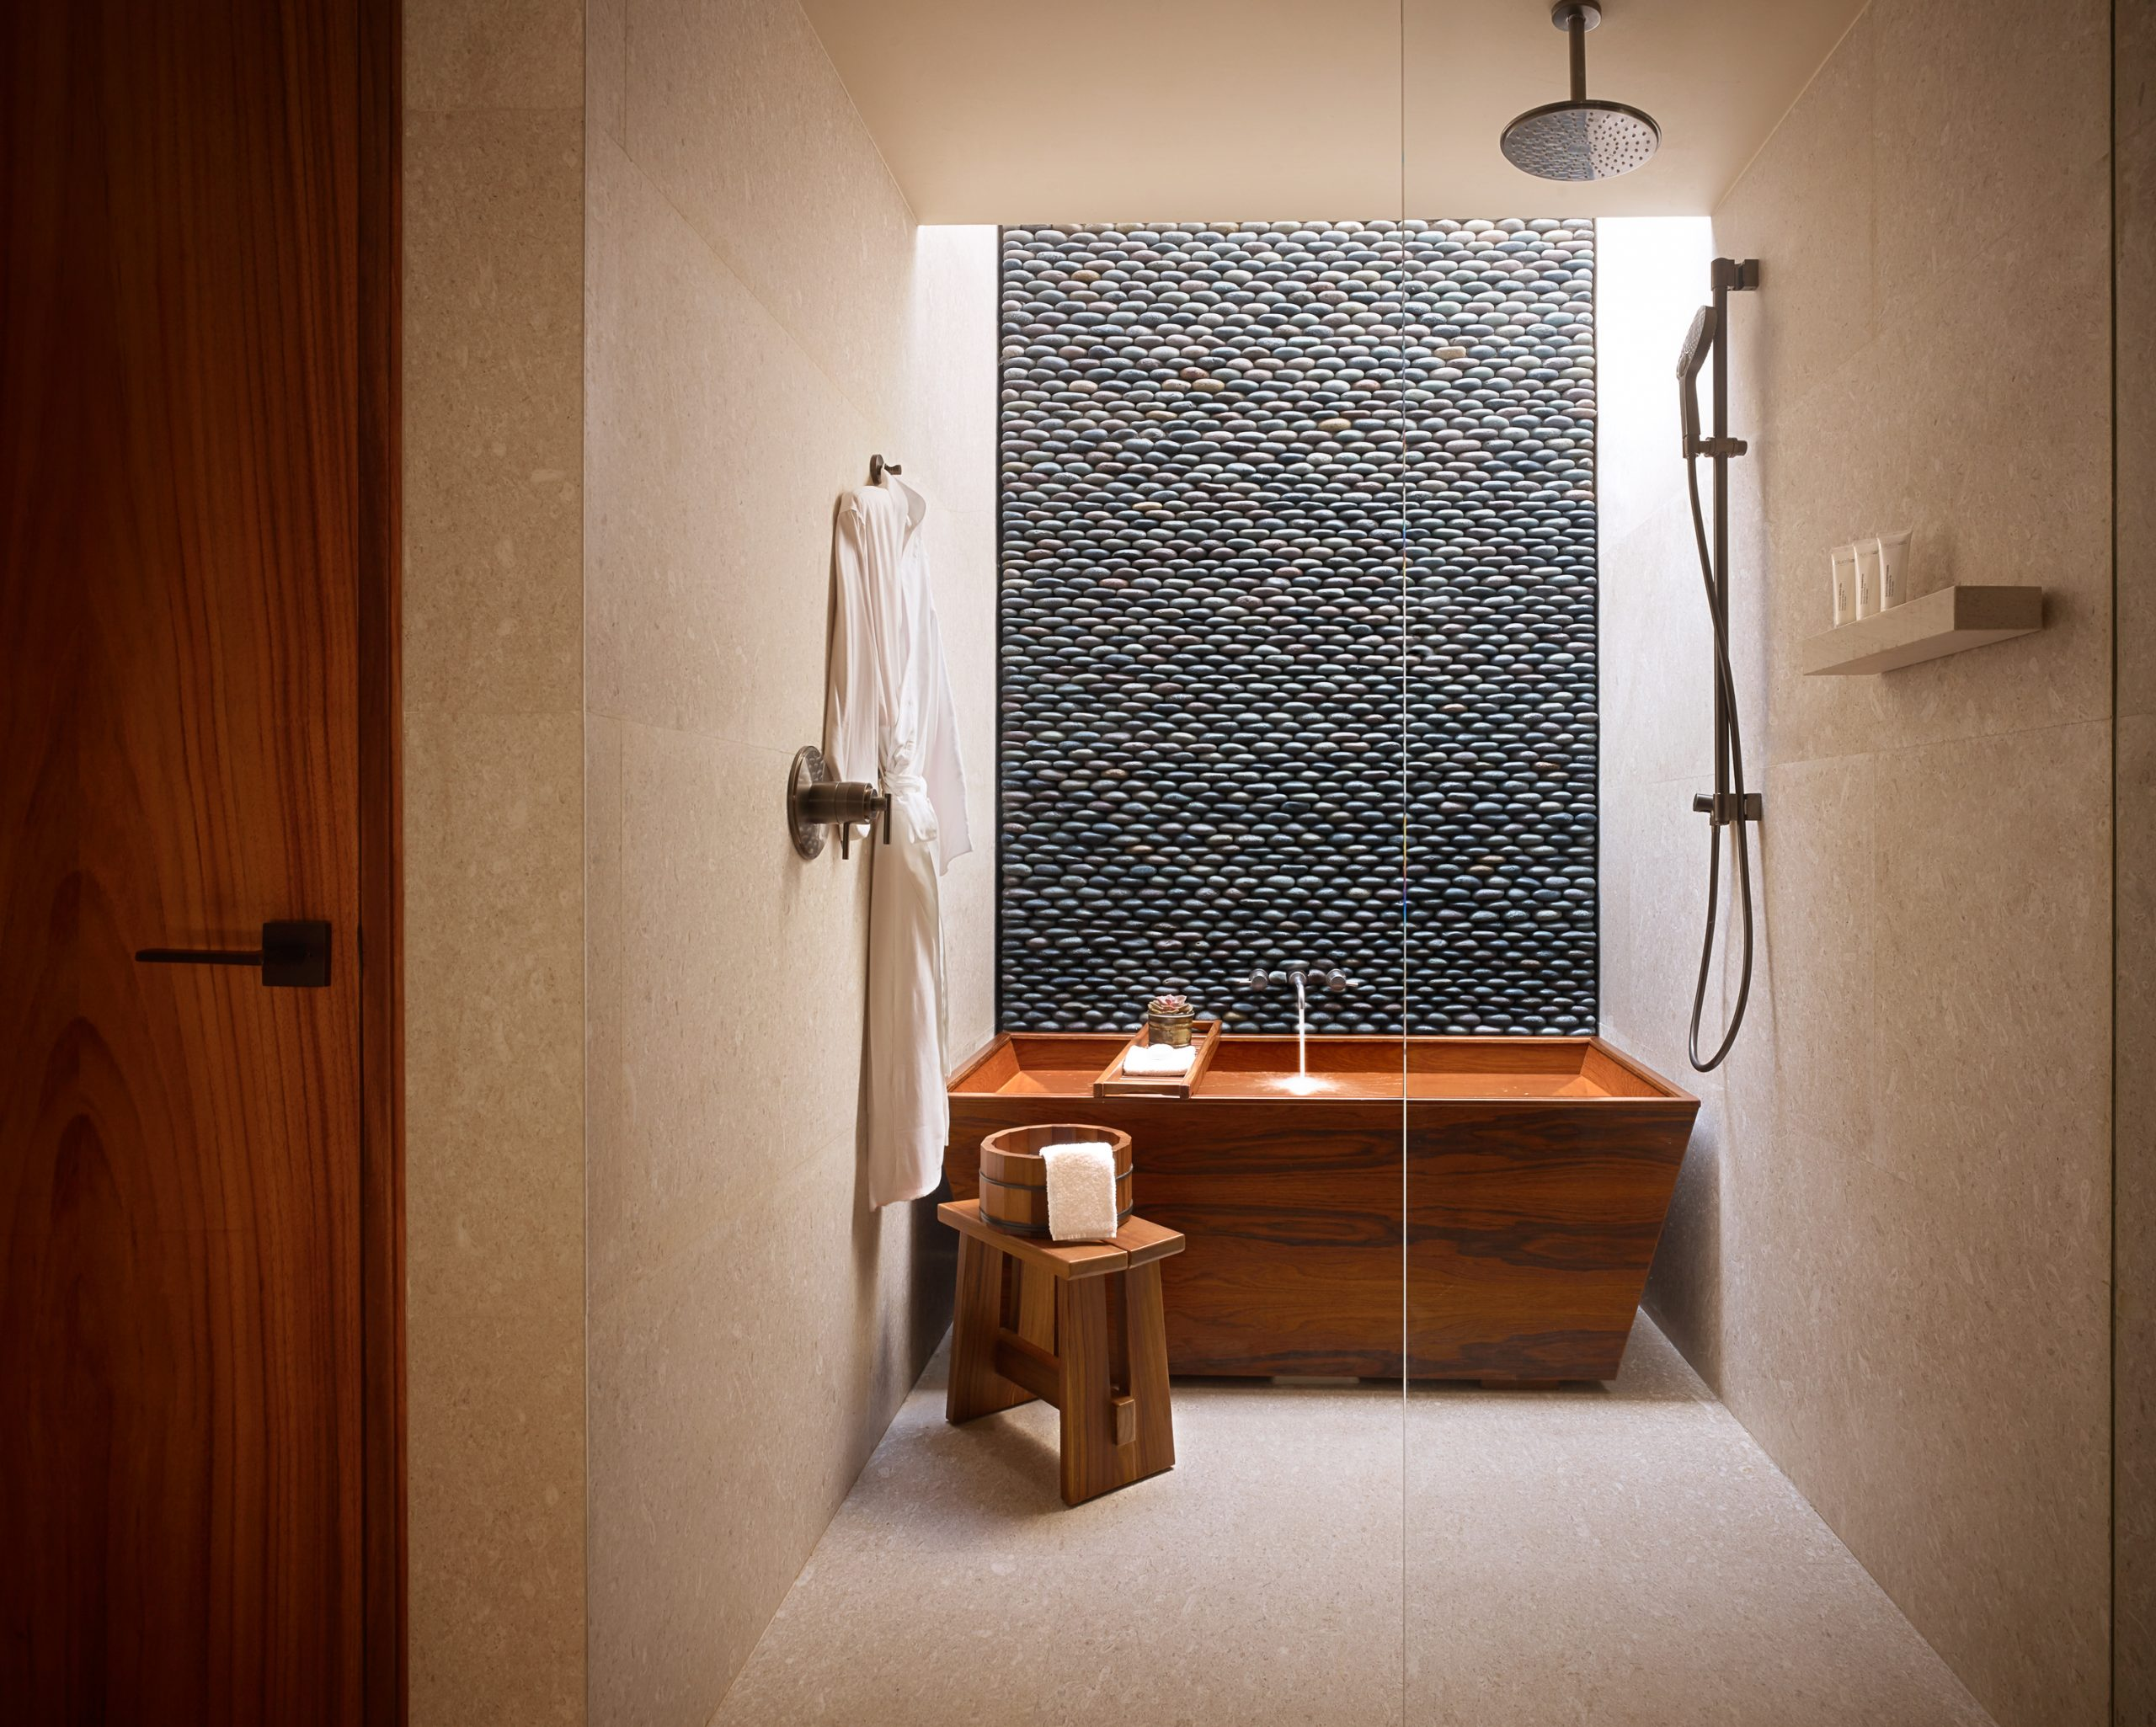 Japanese informed bathroom at Nobu Hotel by WATG and Studio PCH